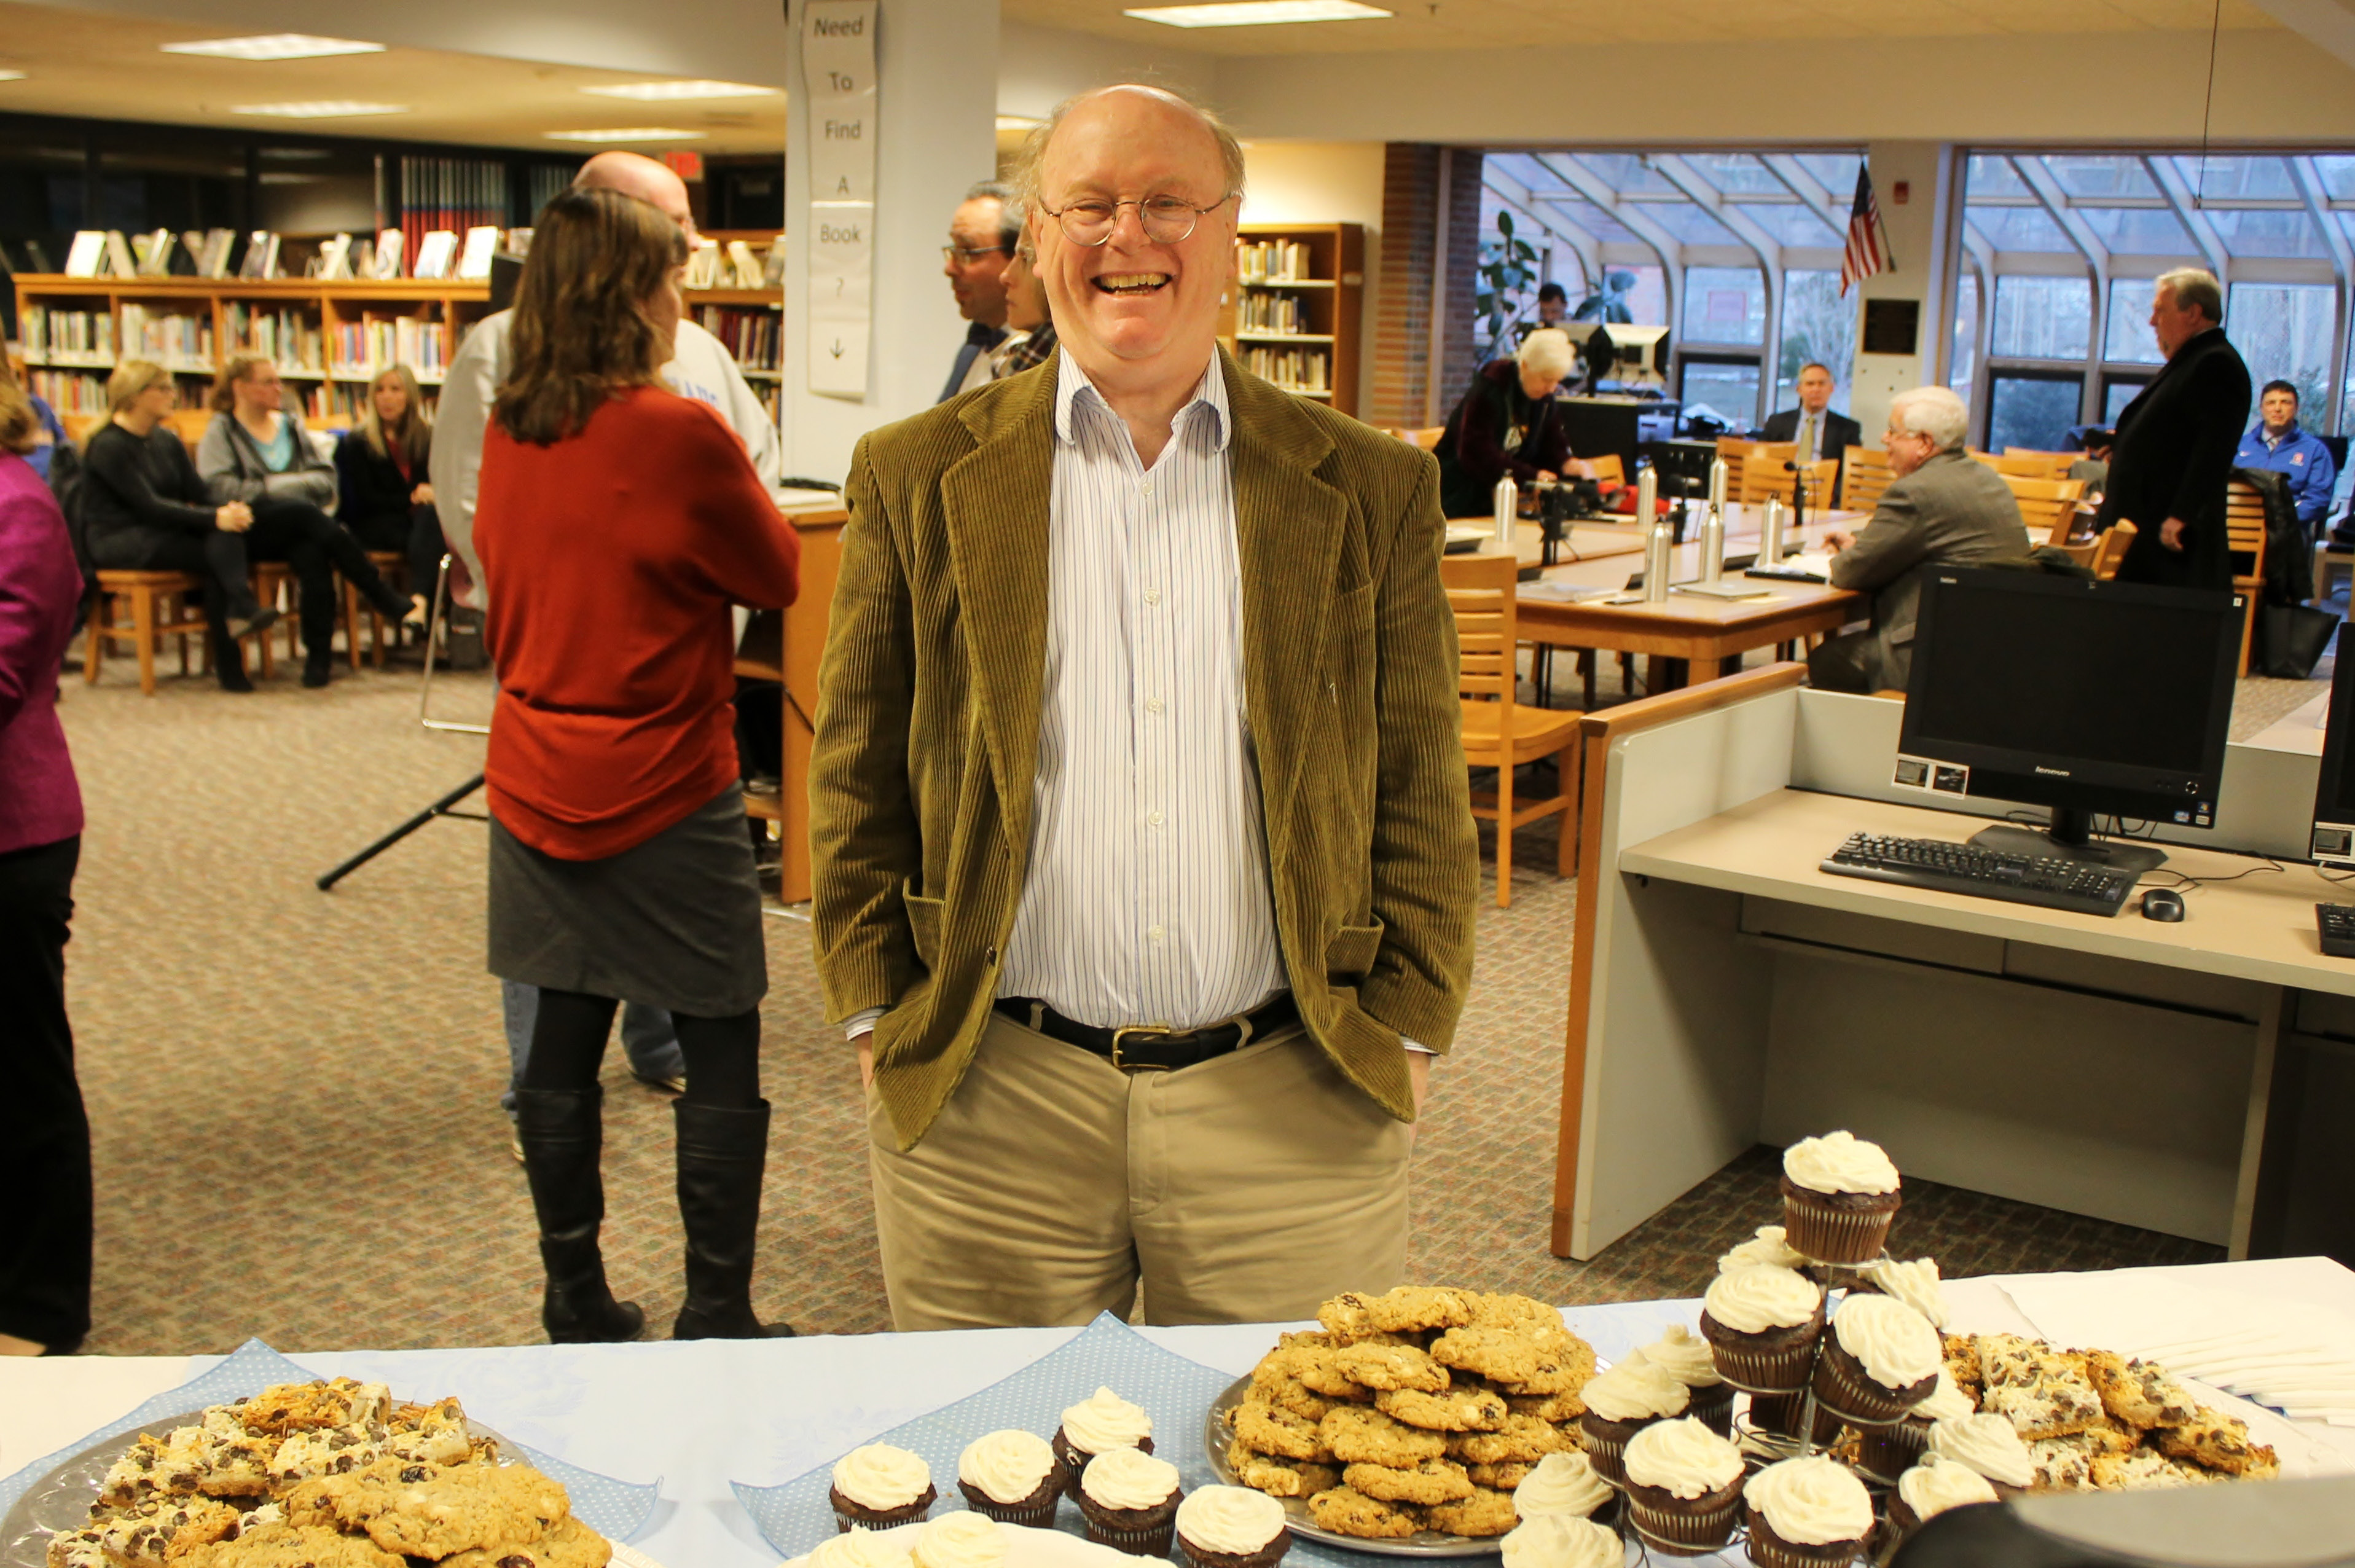 Board of Education member Victor Friedrich pauses before a table of baked goods at the BOE